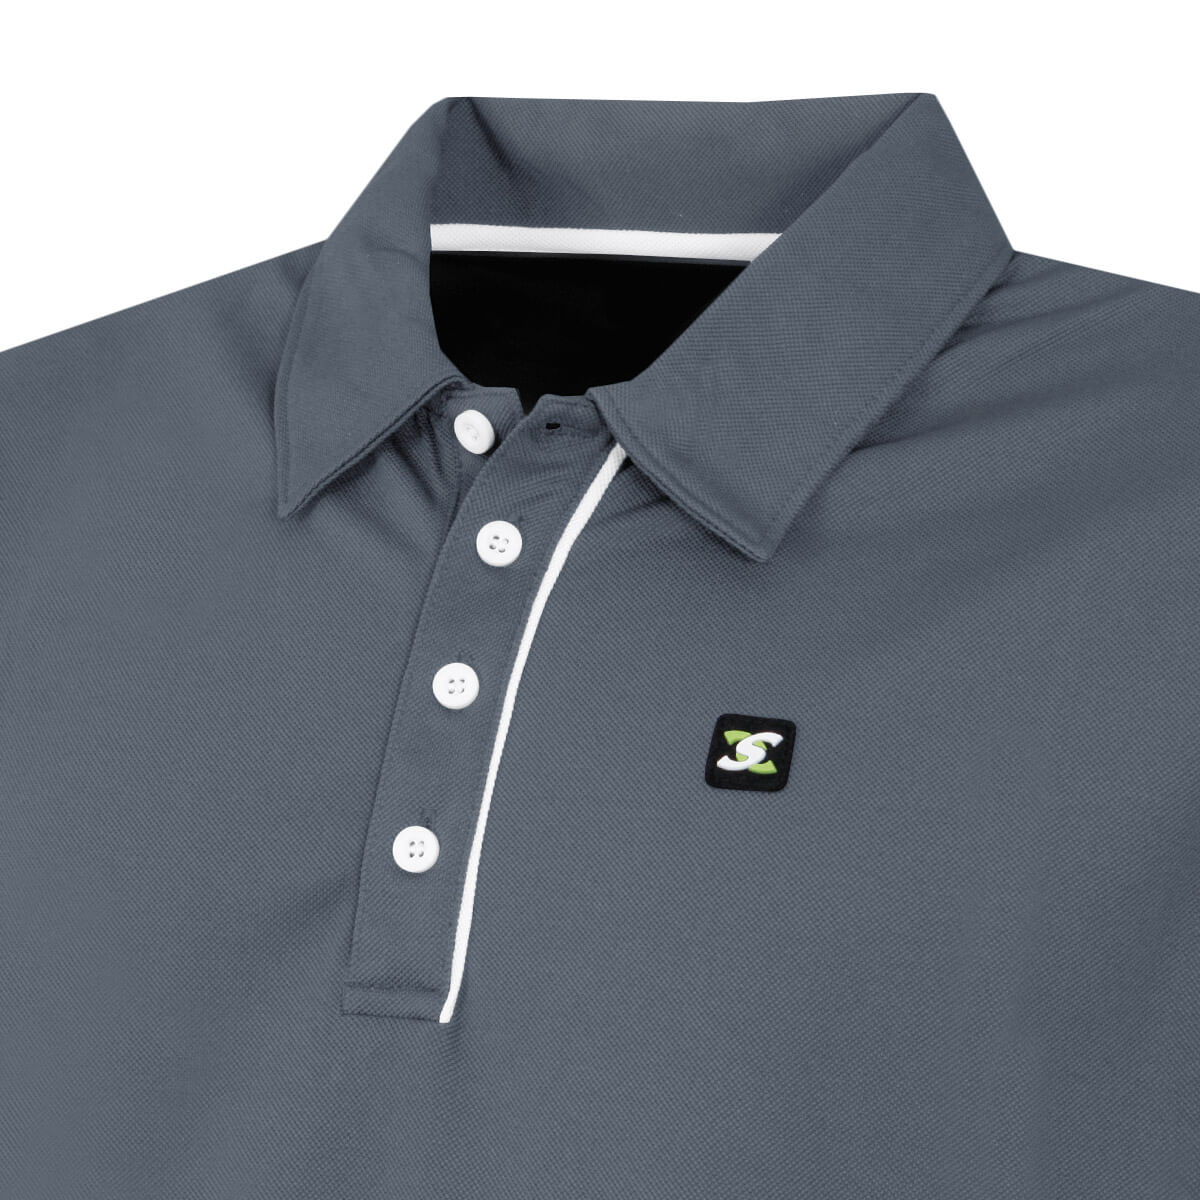 Stuburt-Mens-Urban-Long-Sleeve-Wicking-Breathable-Golf-Polo-Shirt-33-OFF-RRP thumbnail 18